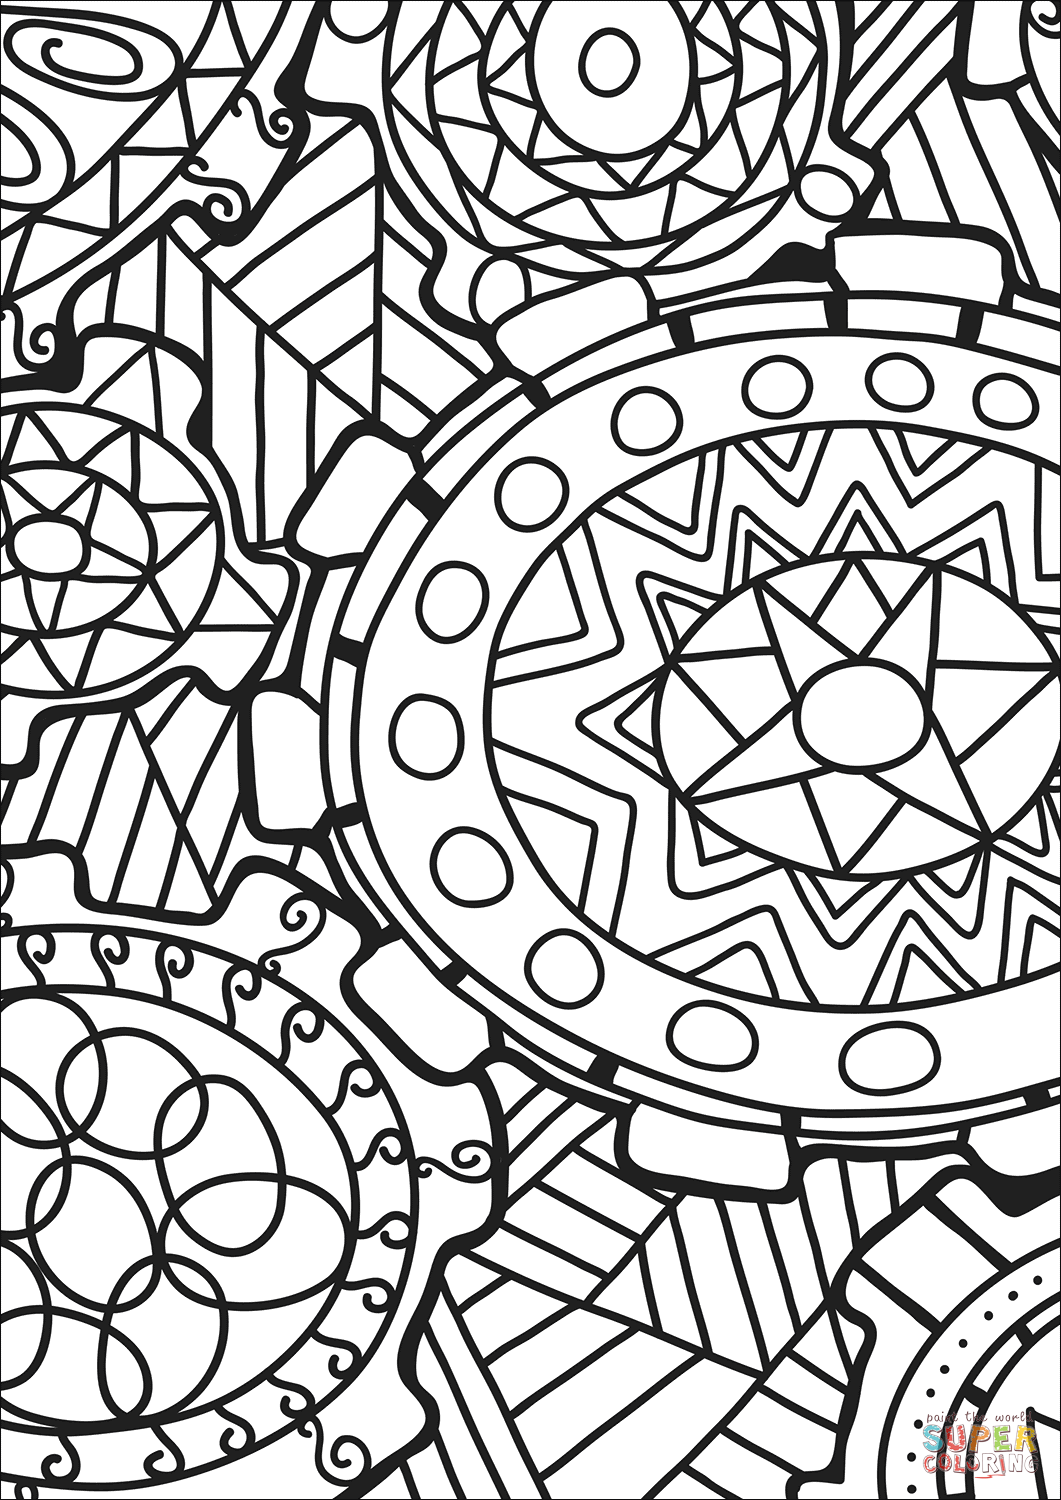 free doodle art to print and color free doodle art coloring pages coloring home free print art doodle and color to